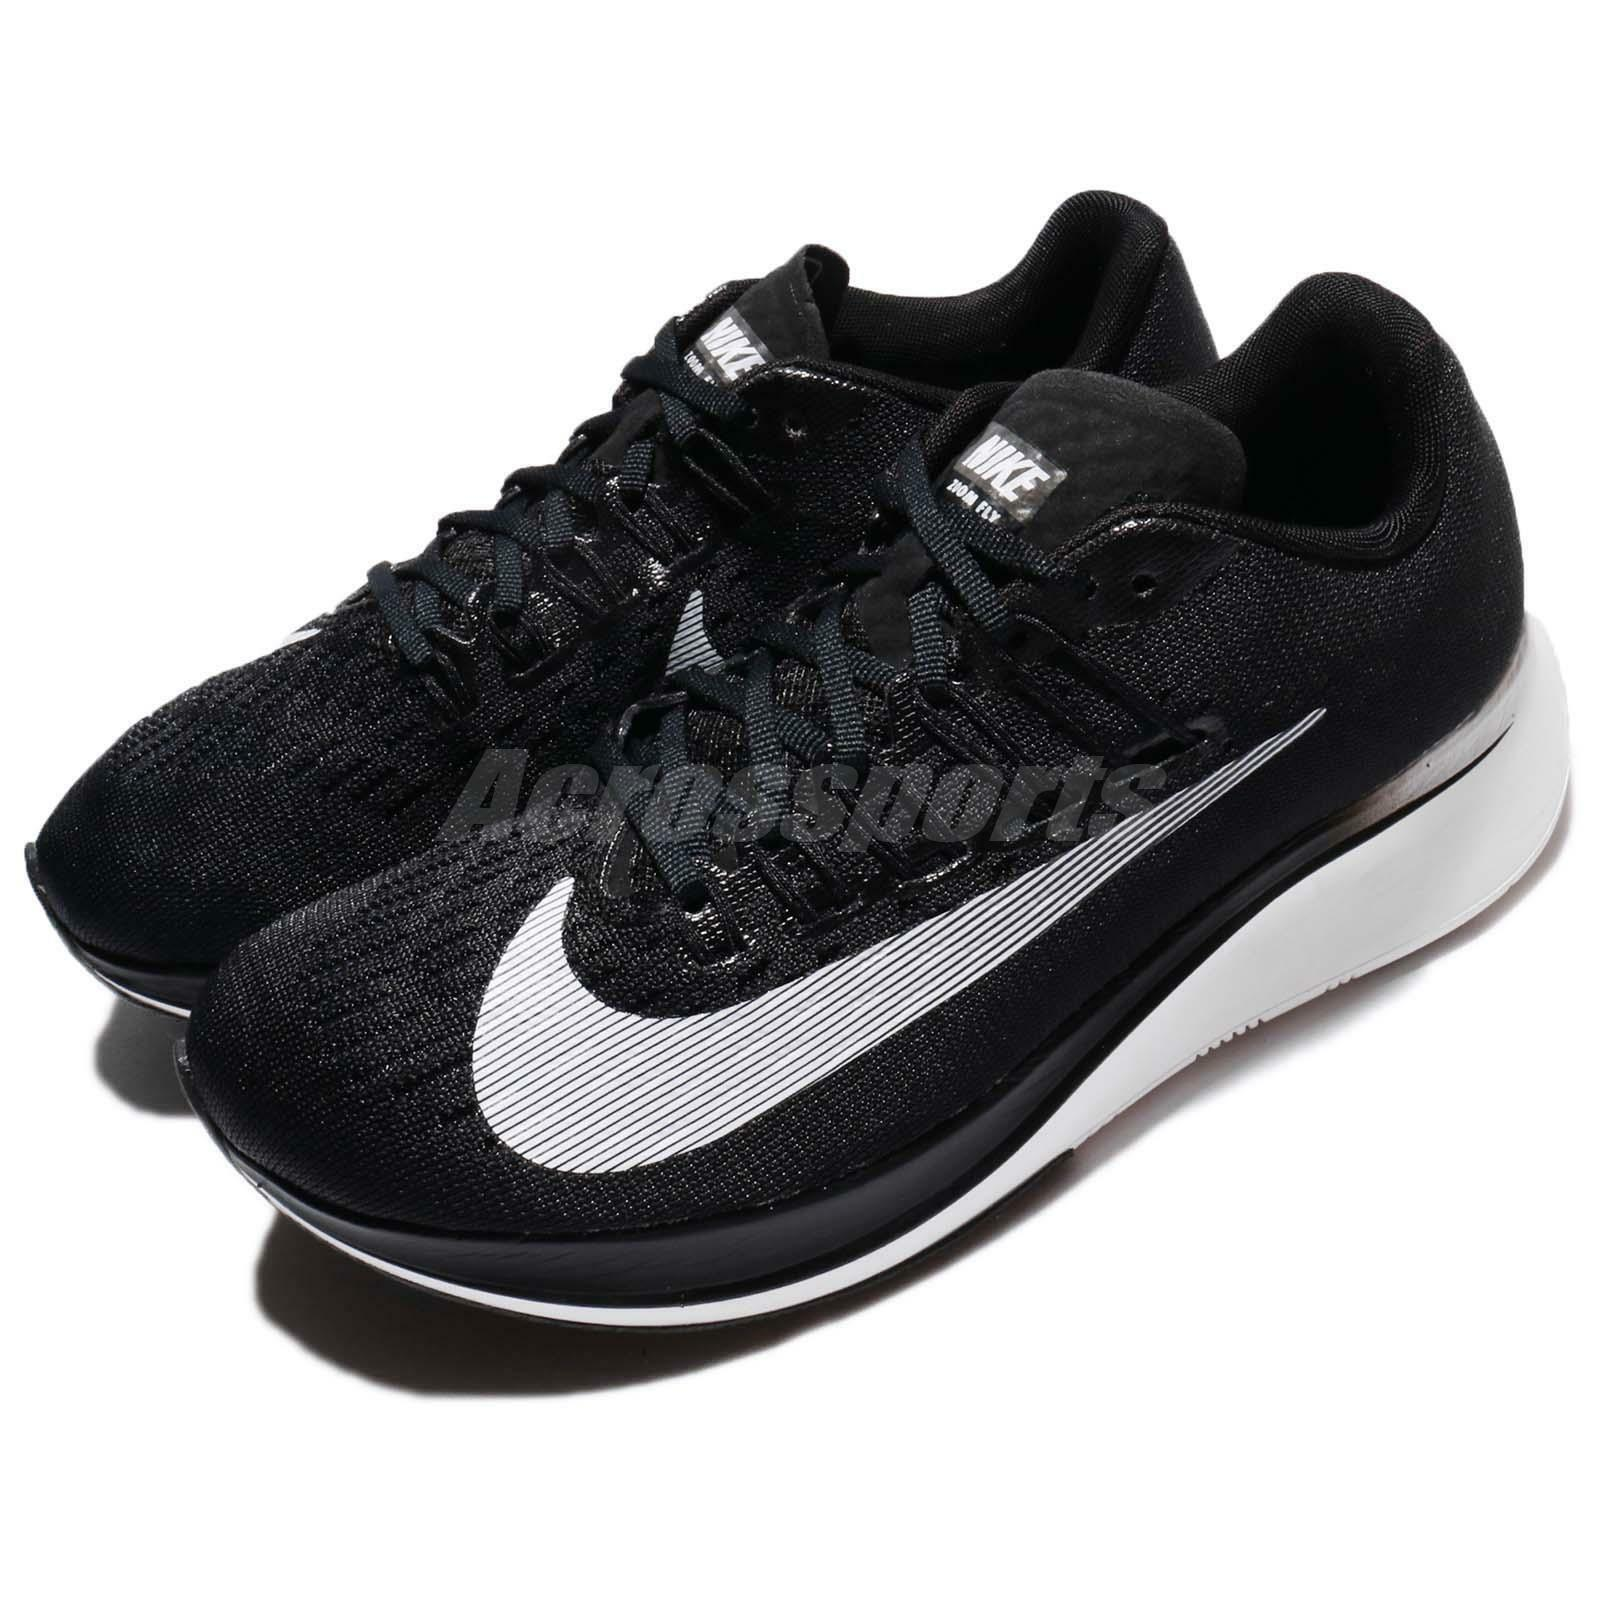 Wmns Nike Zoom Fly Black White Women Running shoes Sneakers Trainers 897821-001